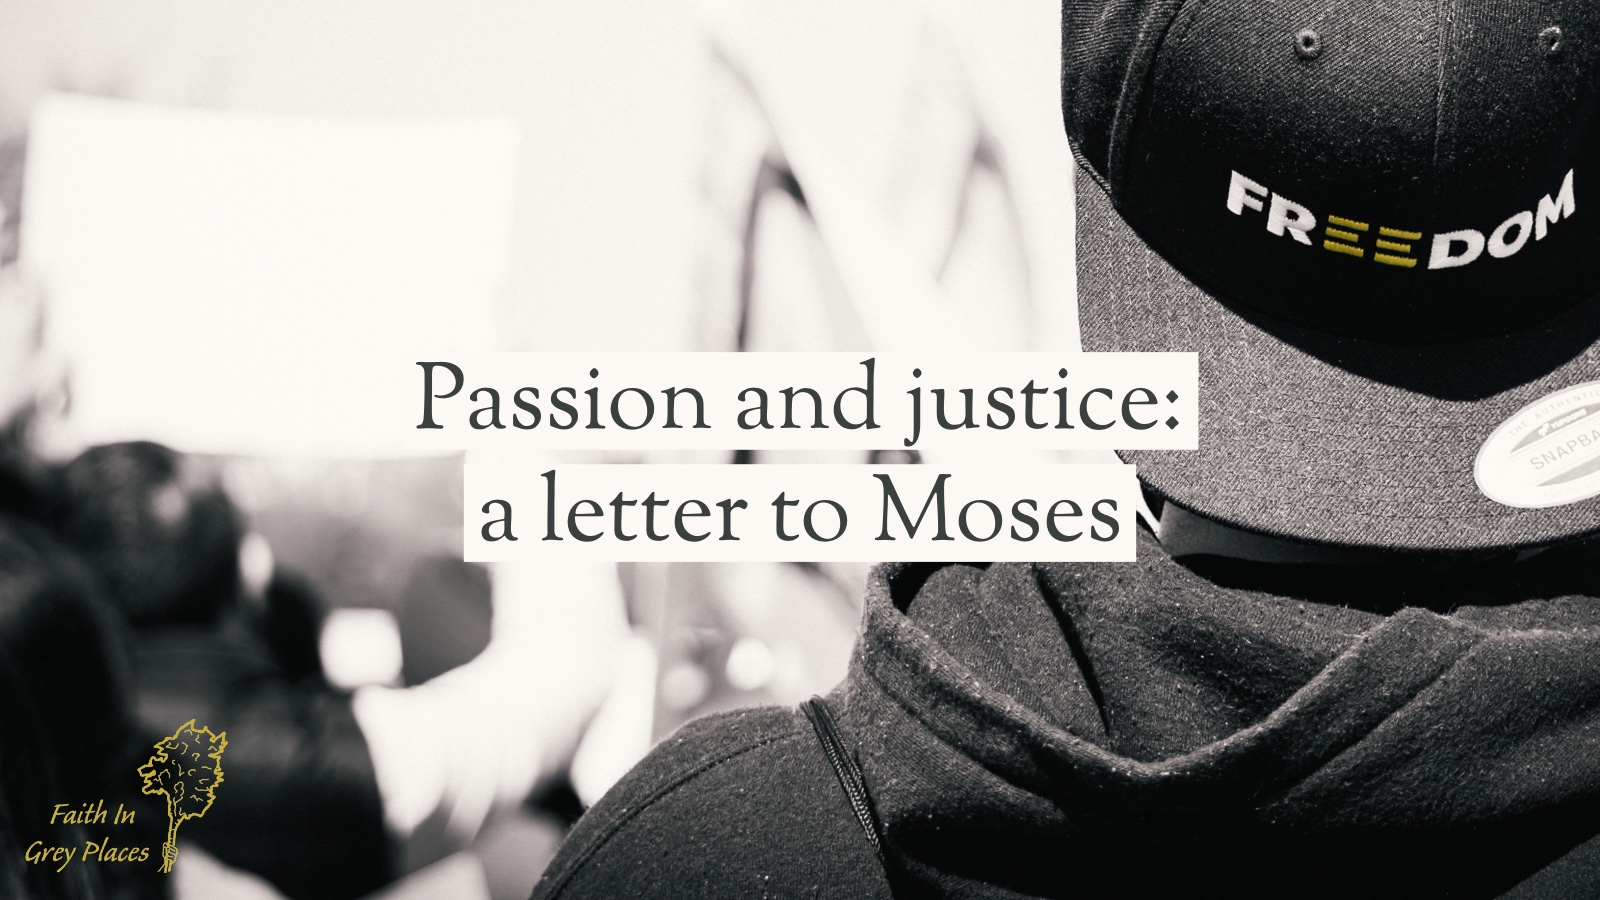 """Black and white photo of the head and shoulders of a young person, viewed from behind, attending a protest. They wear a backwards cap with the word """"Freedom"""" on it. Text over the top: Passion and justice: a letter to Moses. Faith in Grey Places."""